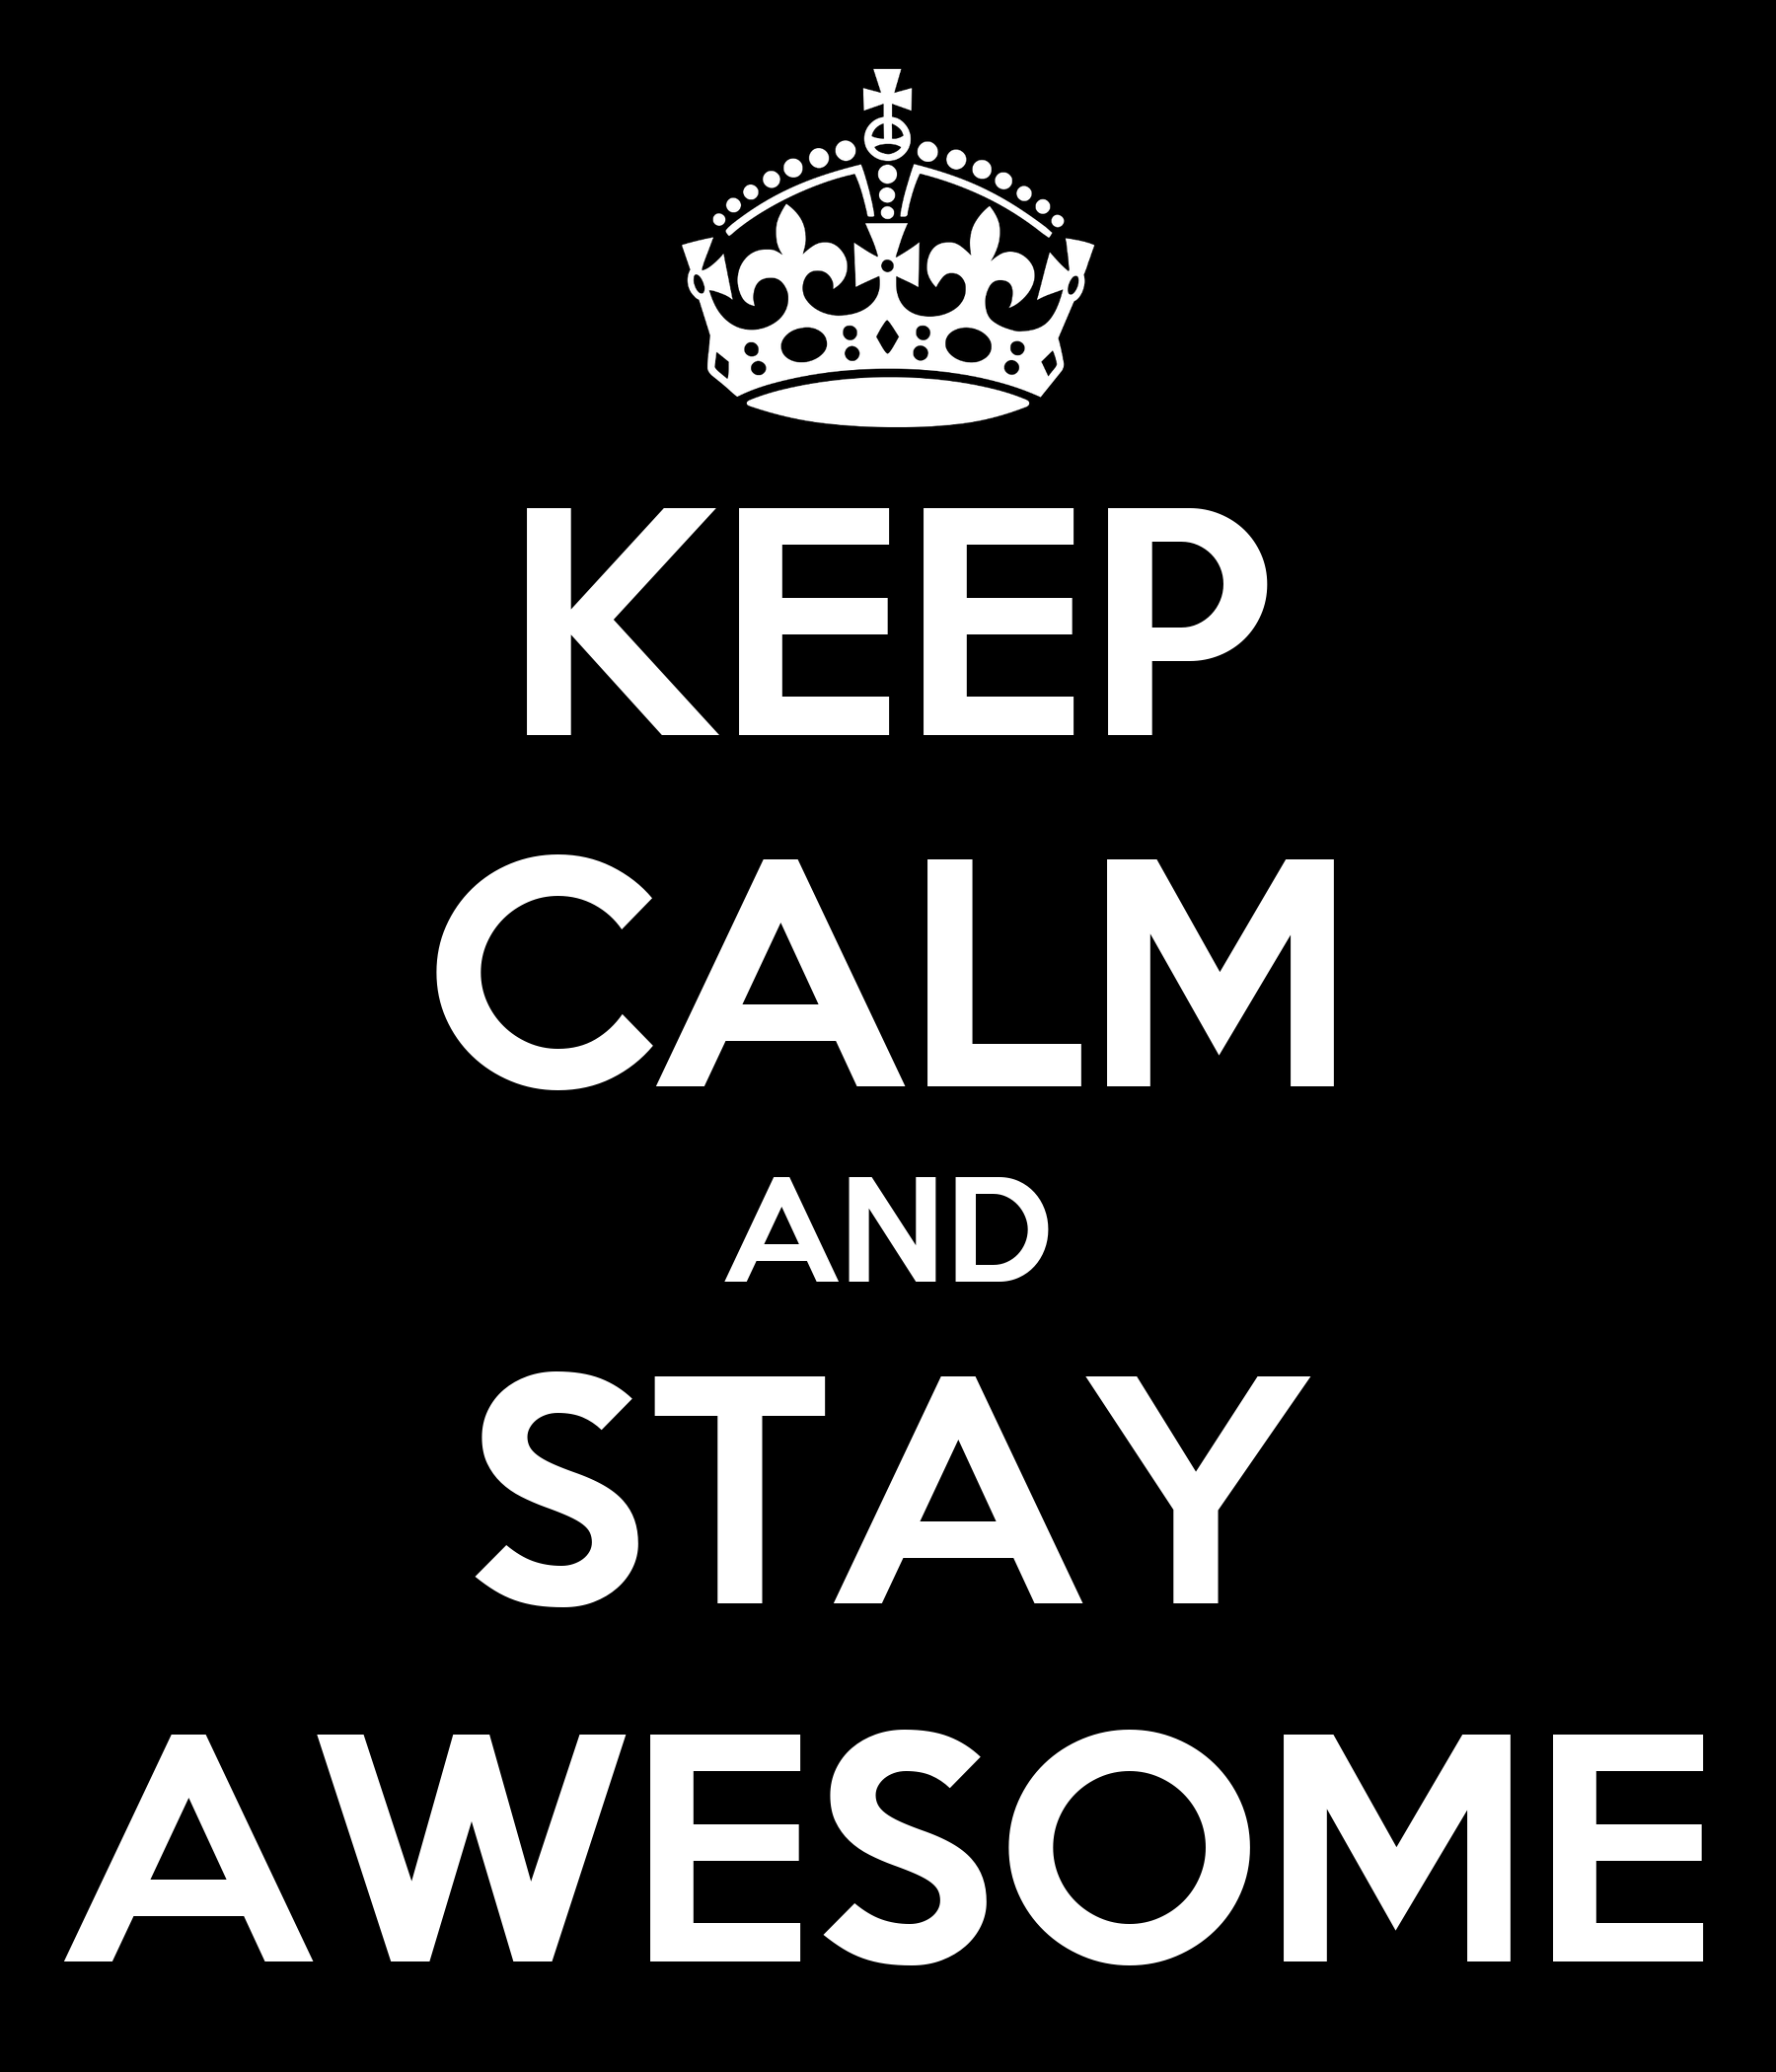 Teddy Bear Wall Stickers Keep Calm And Stay Awesome Poster H Keep Calm O Matic